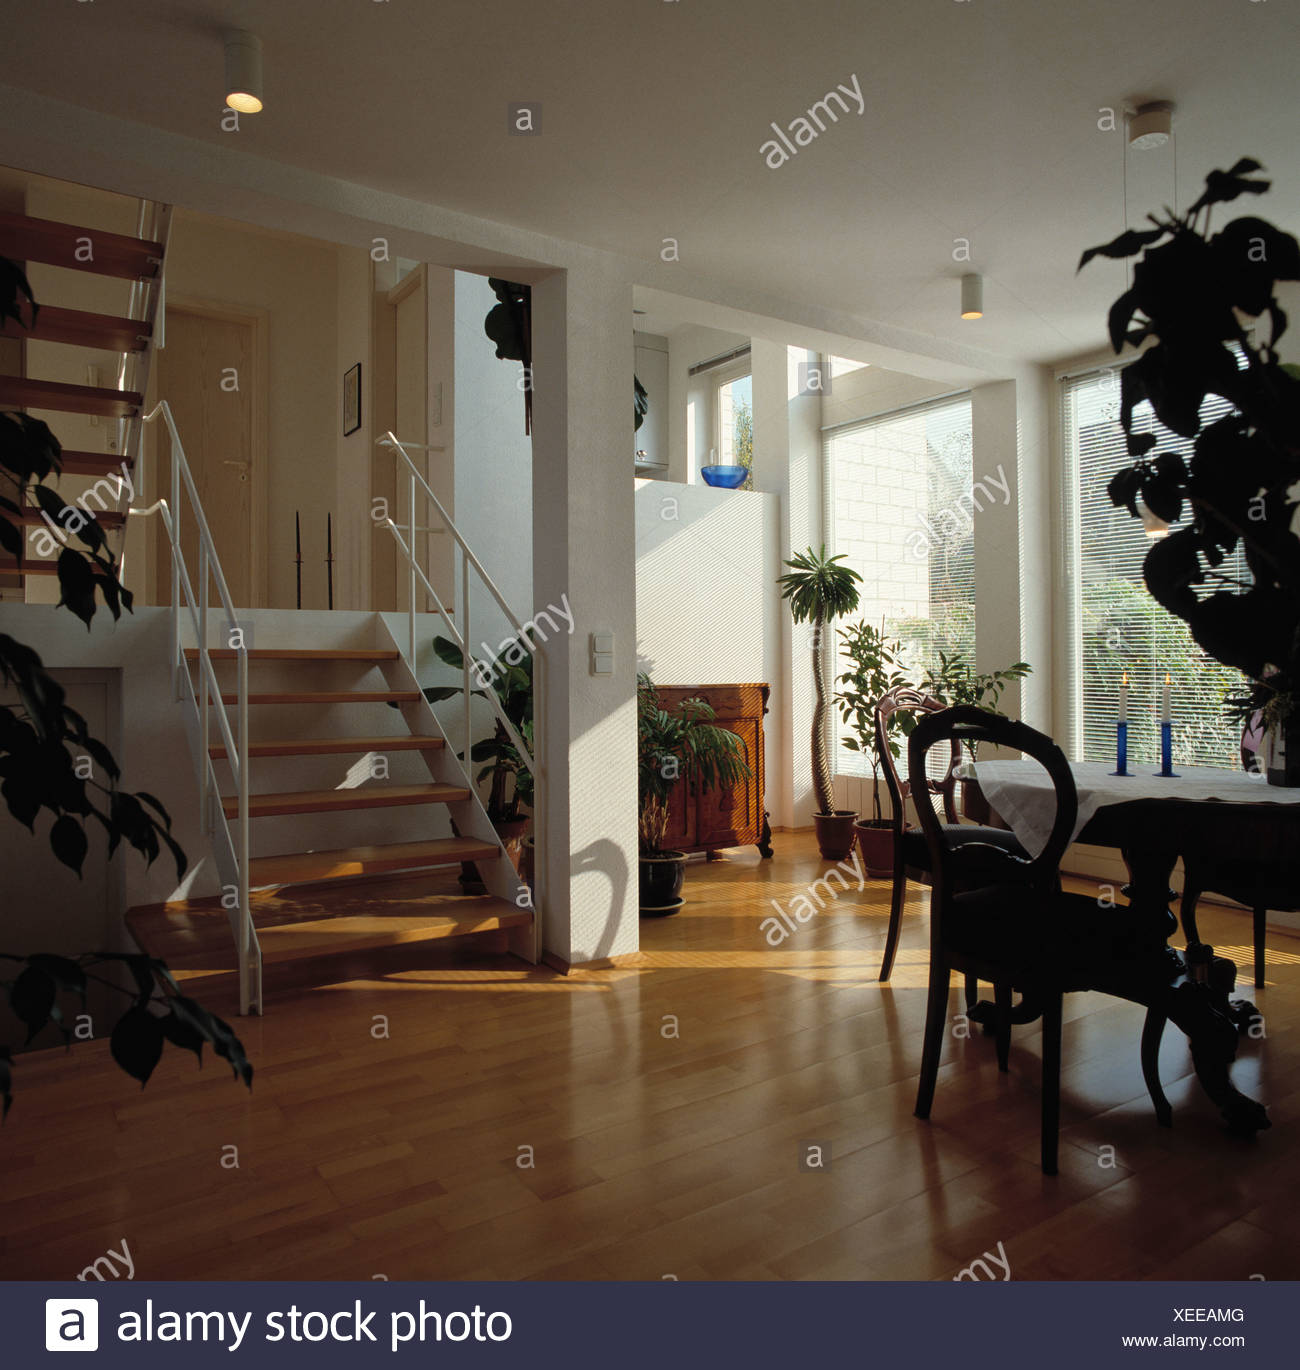 Wooden Flooring And Small Simple Staircase In Double Height Modern White Dining Room With Antique Chair Table Tall Plant